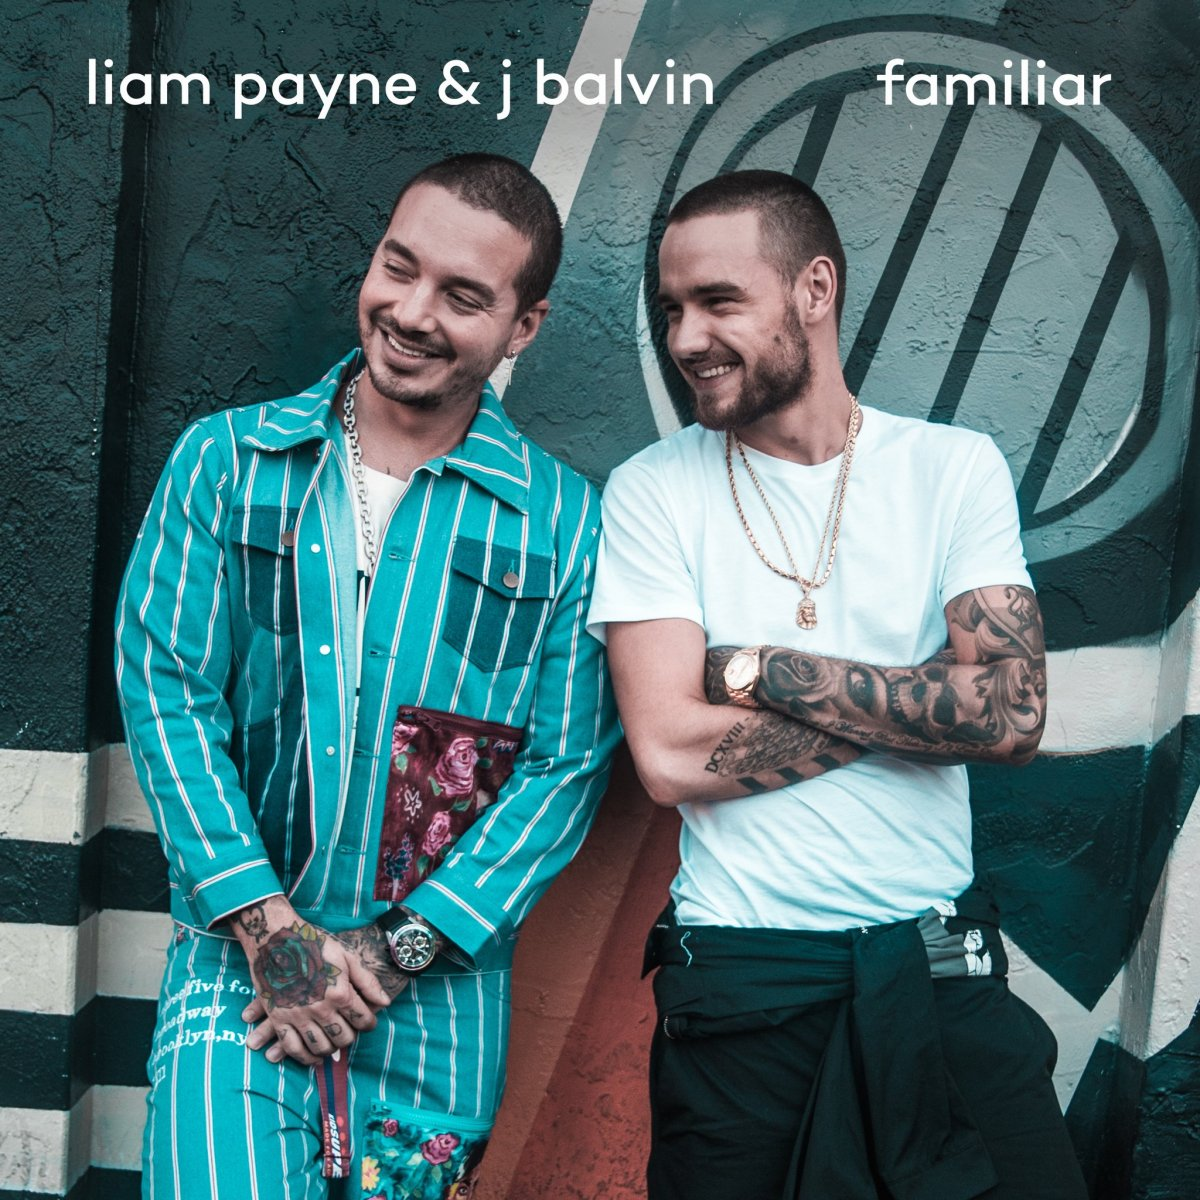 Single Review: Liam Payne & J. Balvin - Familiar